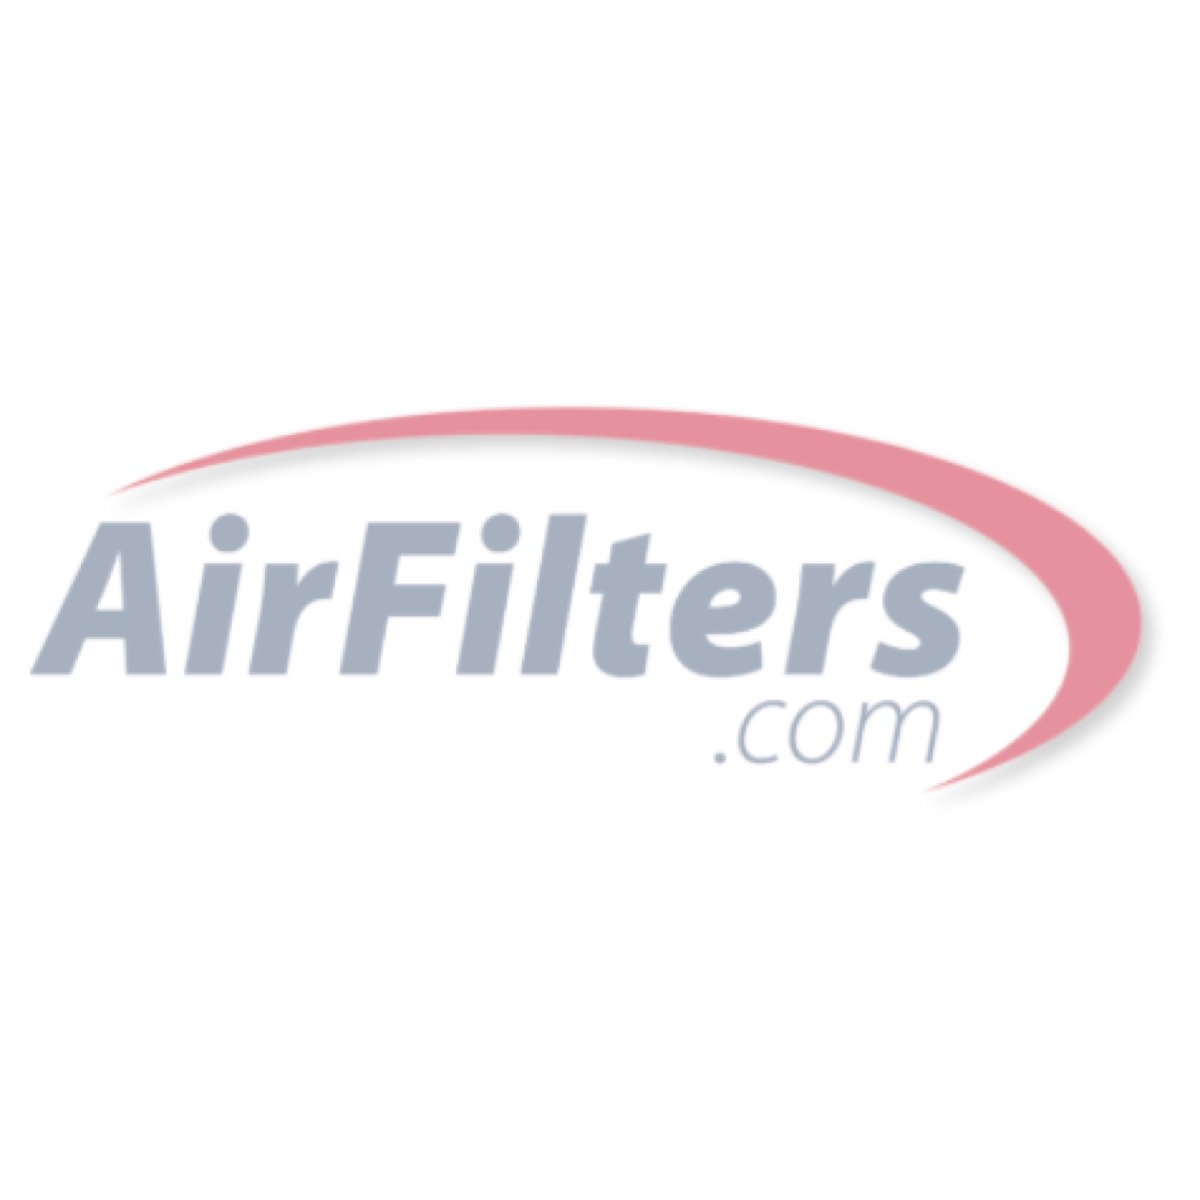 Electro-Air® 16x26x5 Furnace Filters by Accumulair®